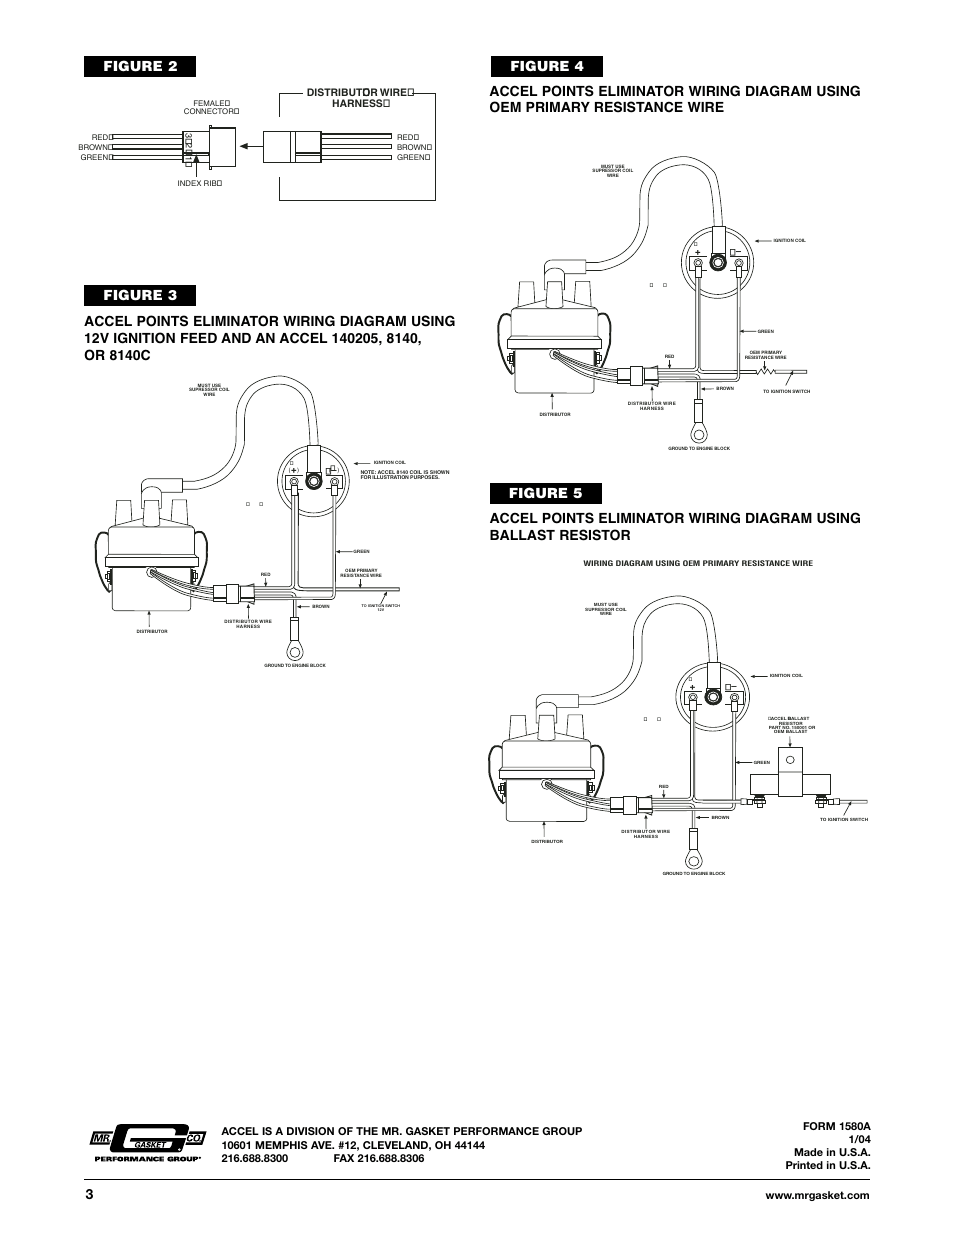 mallory ignition accel points eliminator conversion 2020 page3?resize\\\\\\\\\\\=665%2C861 mallory distributor wiring diagram & mallory unilite wiring unilite distributor wiring diagram at suagrazia.org